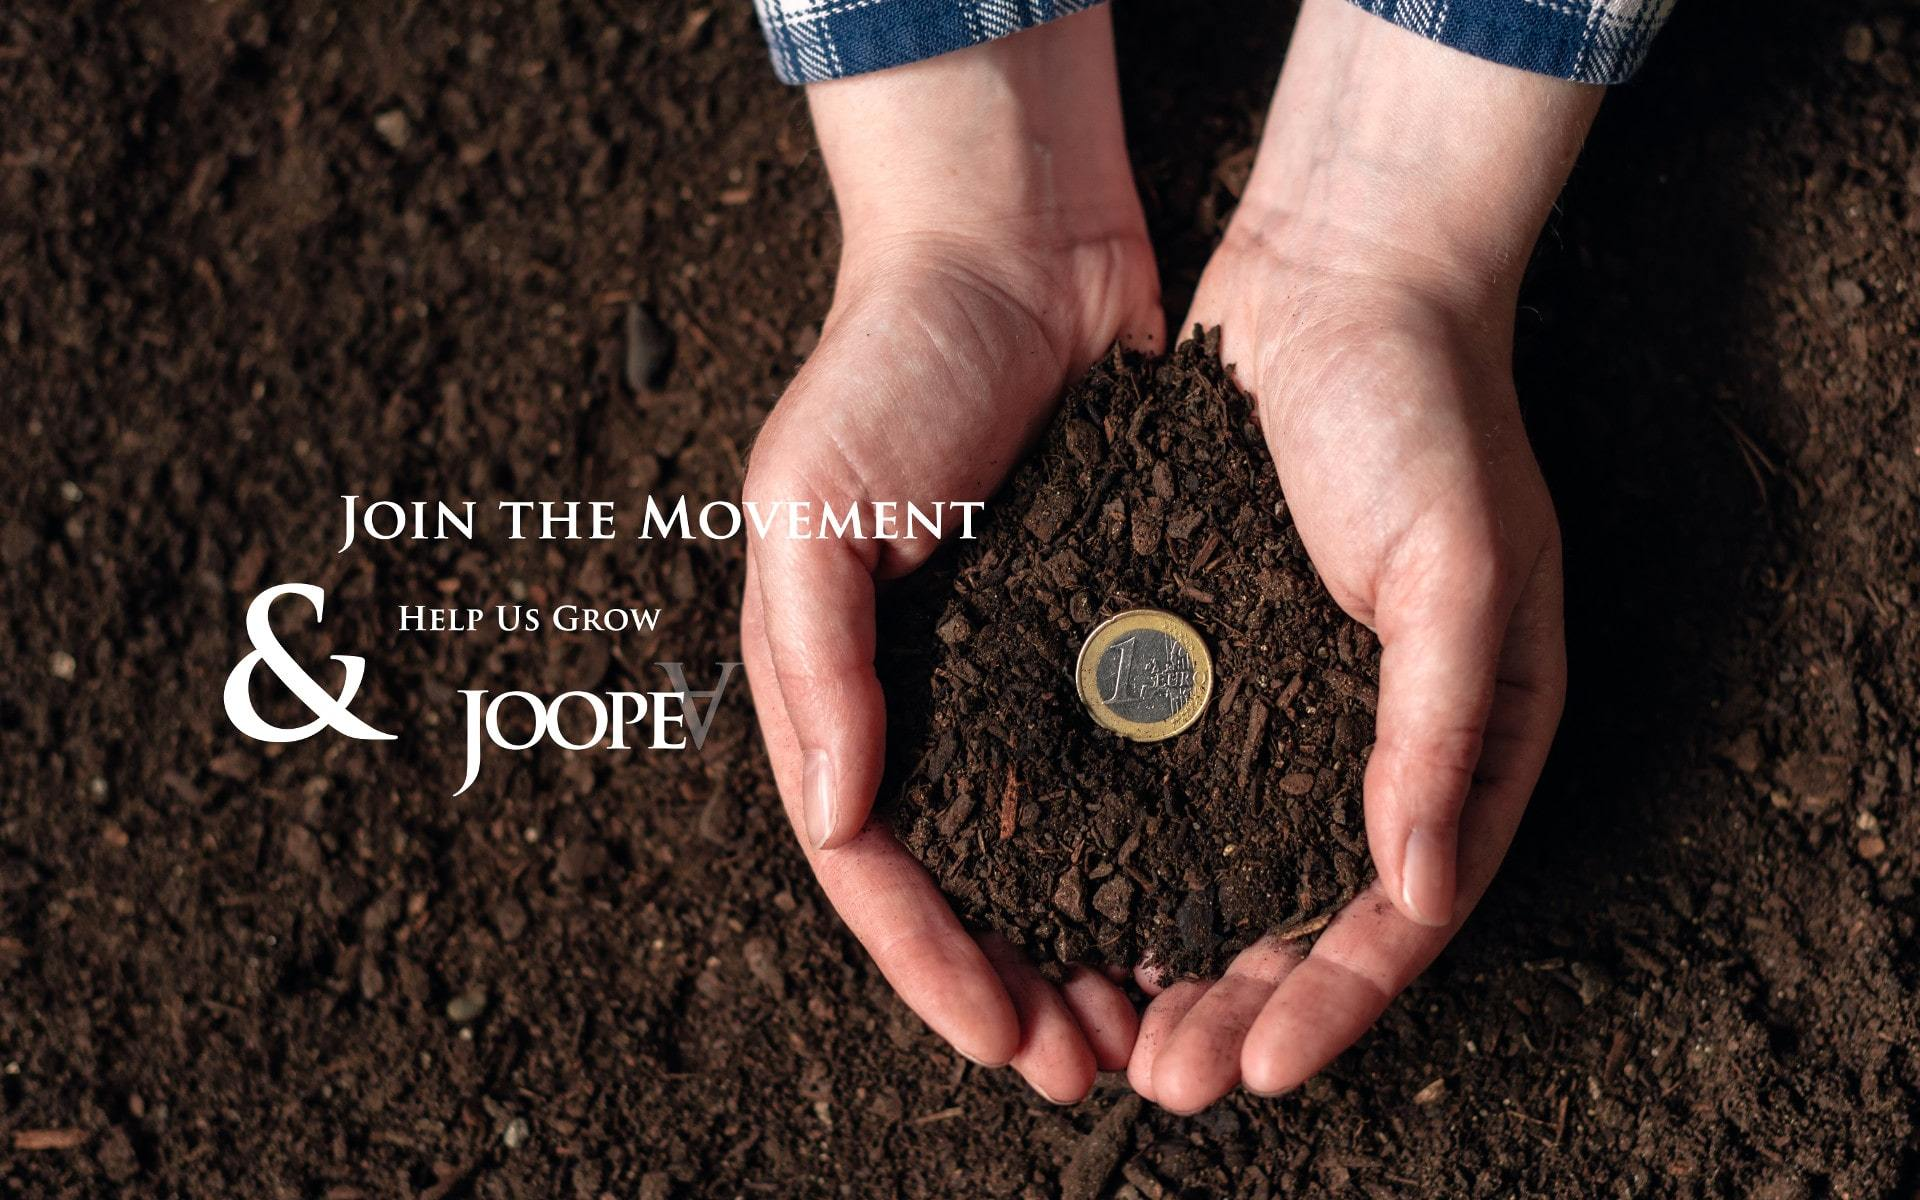 Donate, help us grow & join the movement of JoopeA